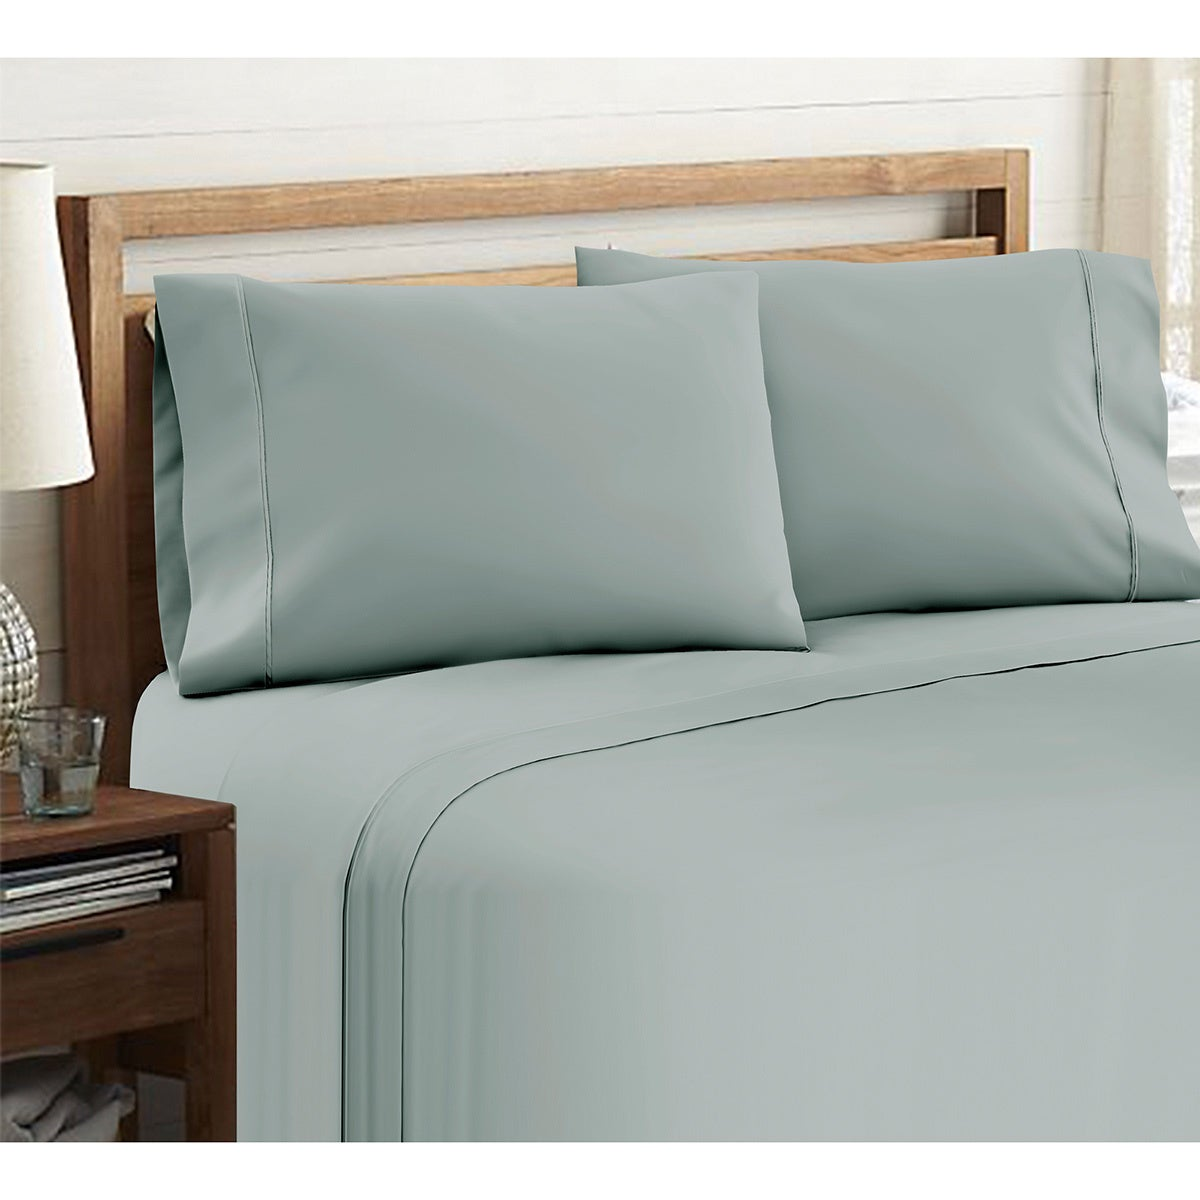 Attrayant Shop Luxury Cotton Rich 800 Thread Count Deep Pocket 6 Piece Sheet Set    Free Shipping Today   Overstock.com   5839313